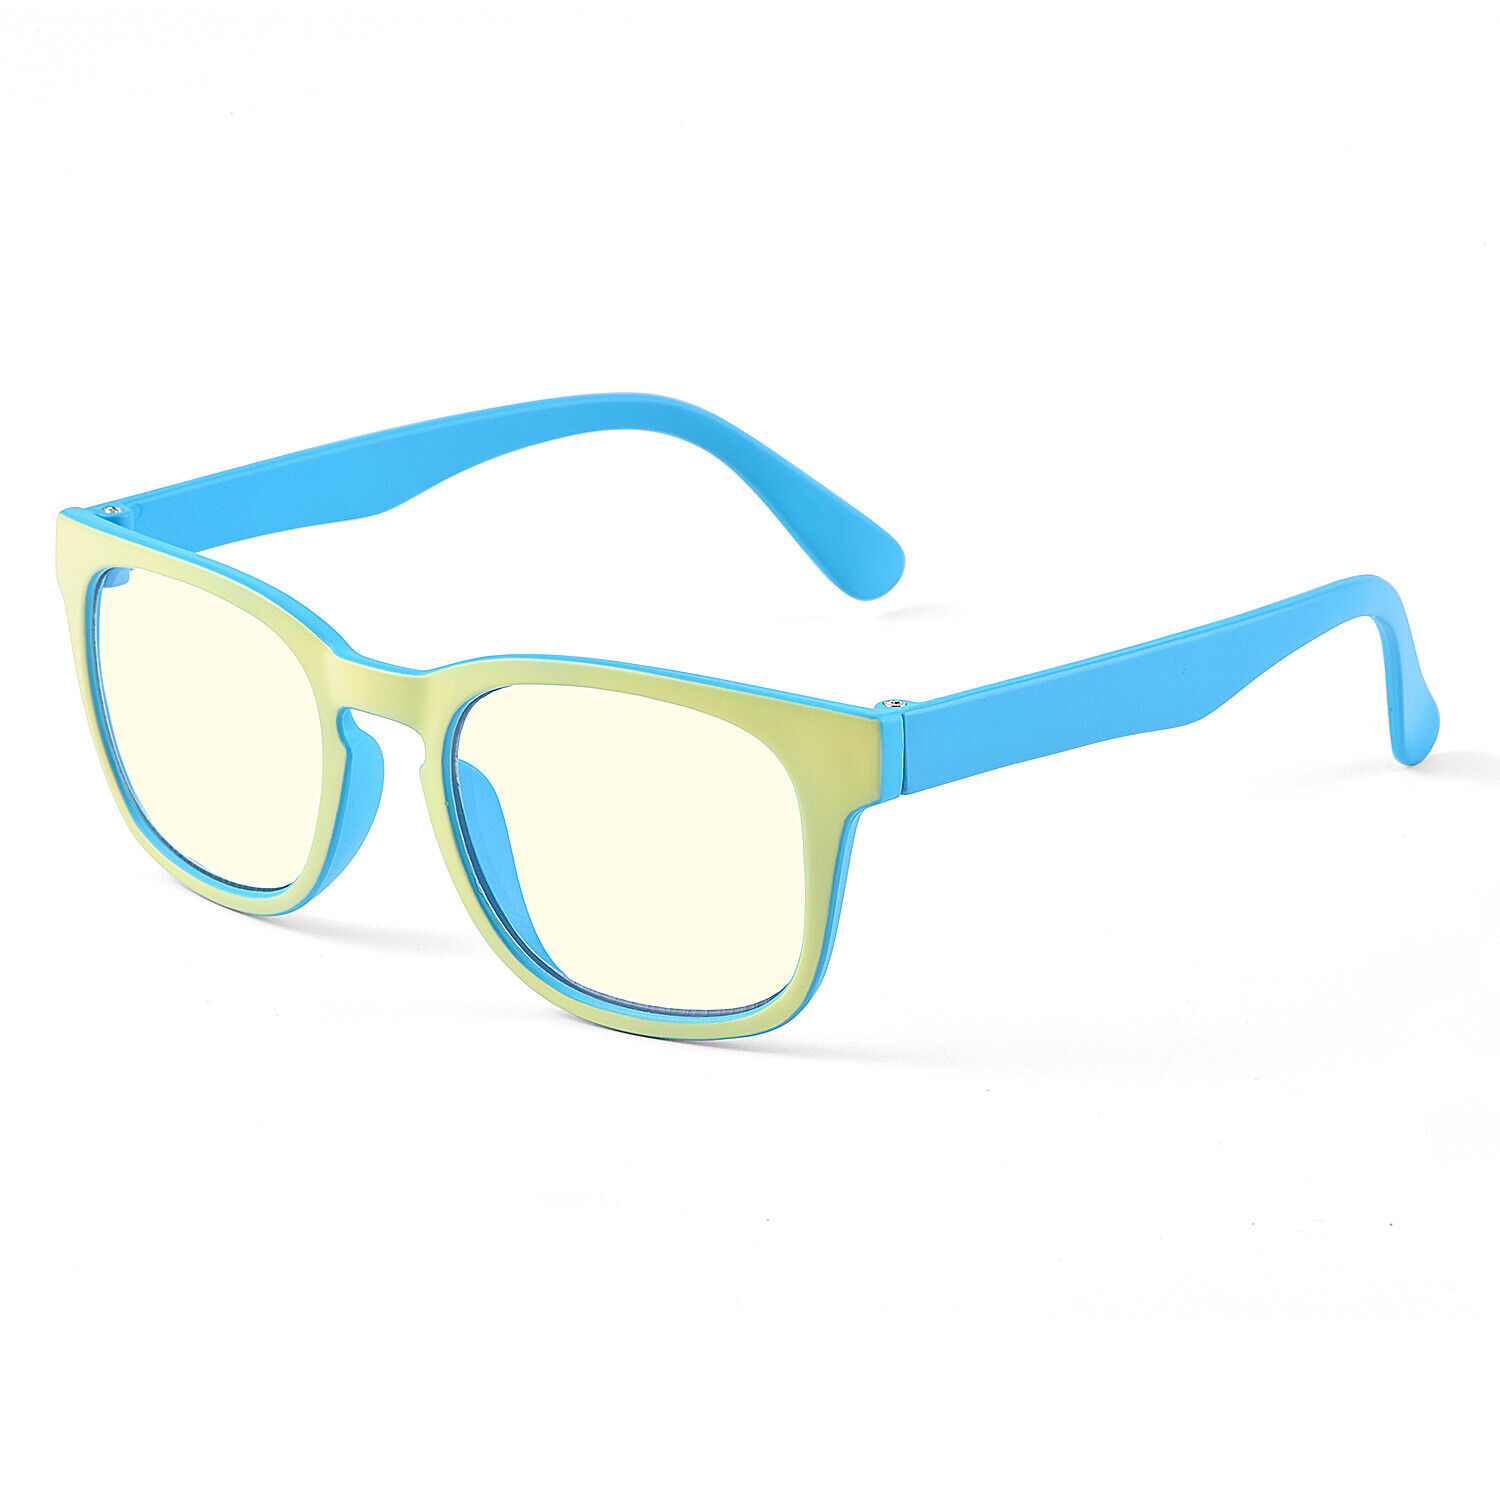 Safeyear Glasses Goggles Blue Light Blocking Tablet TV Prote